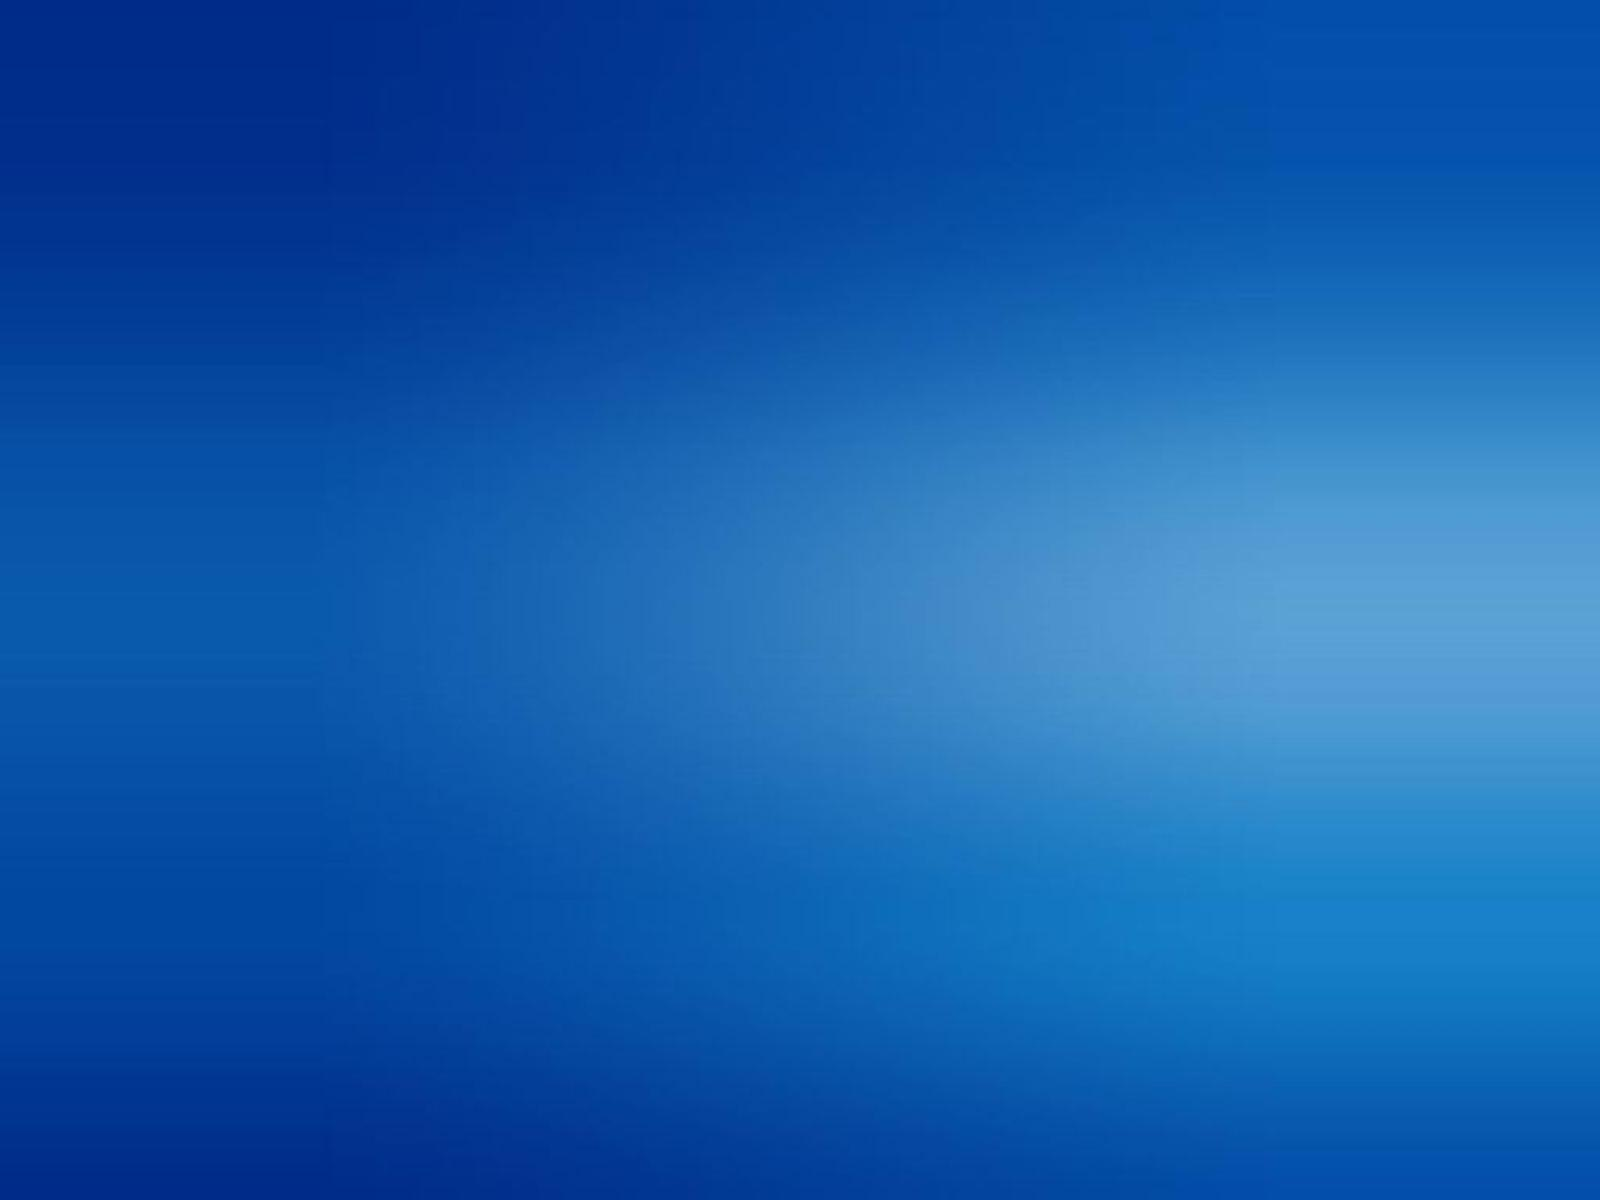 plain blue background - photo #3